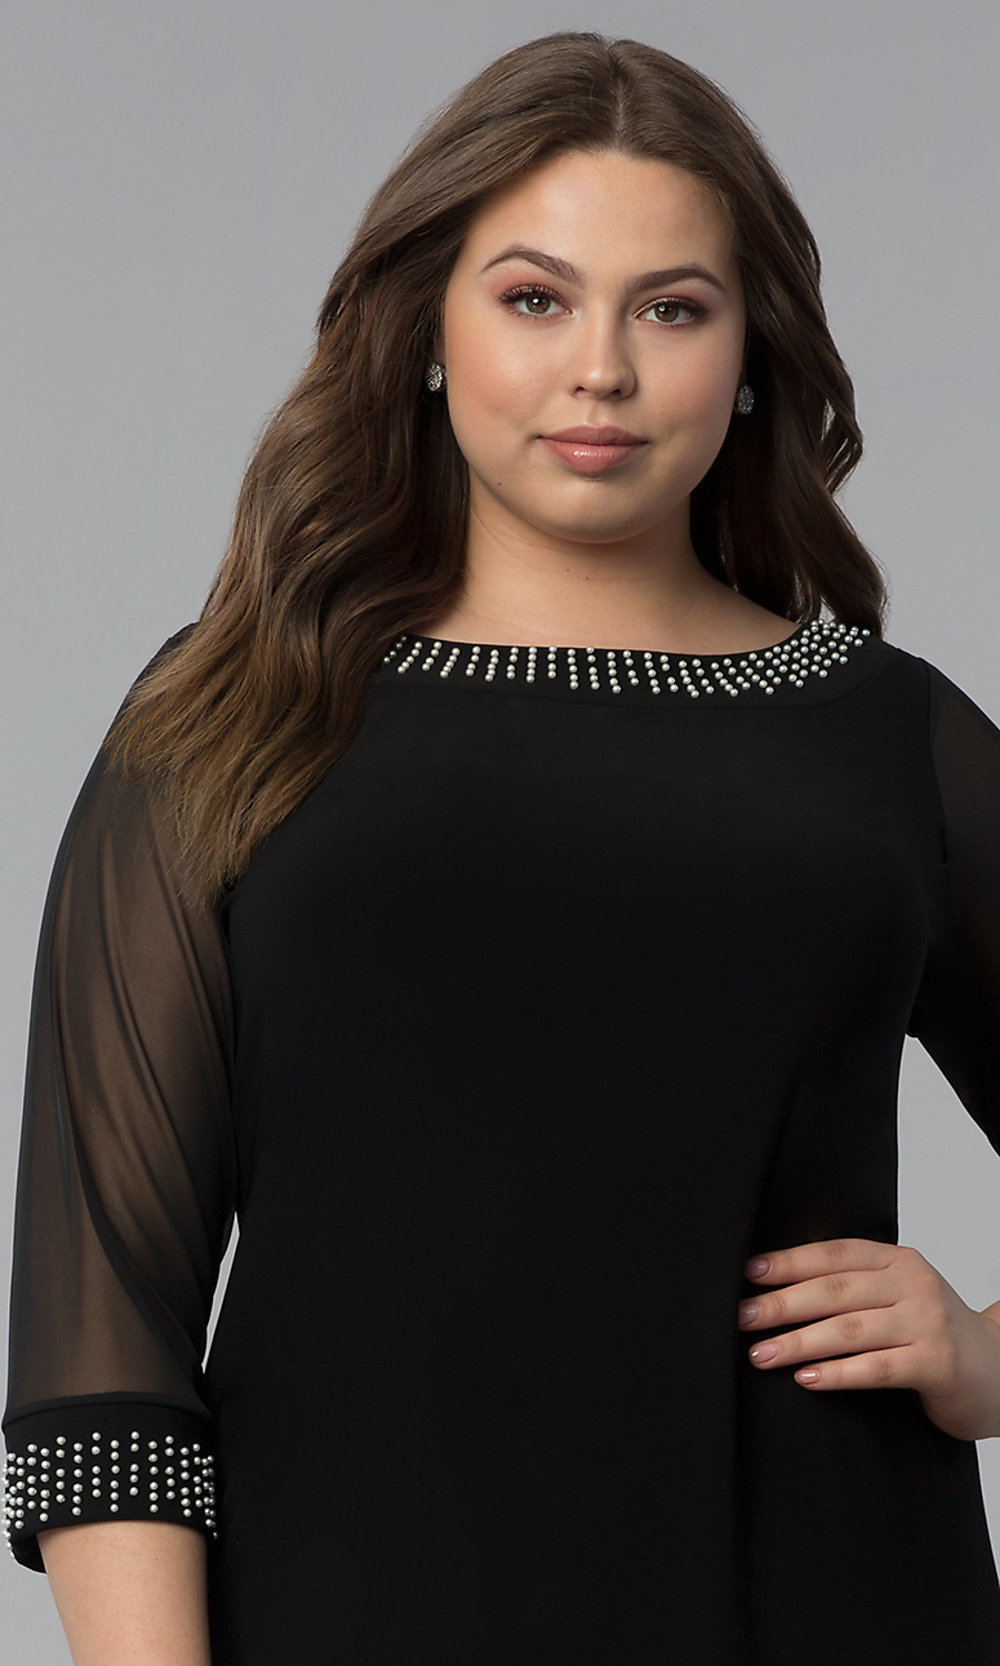 313feaed8f4 ... 3 4-sleeve black plus-size sheath party dress. Tap to expand